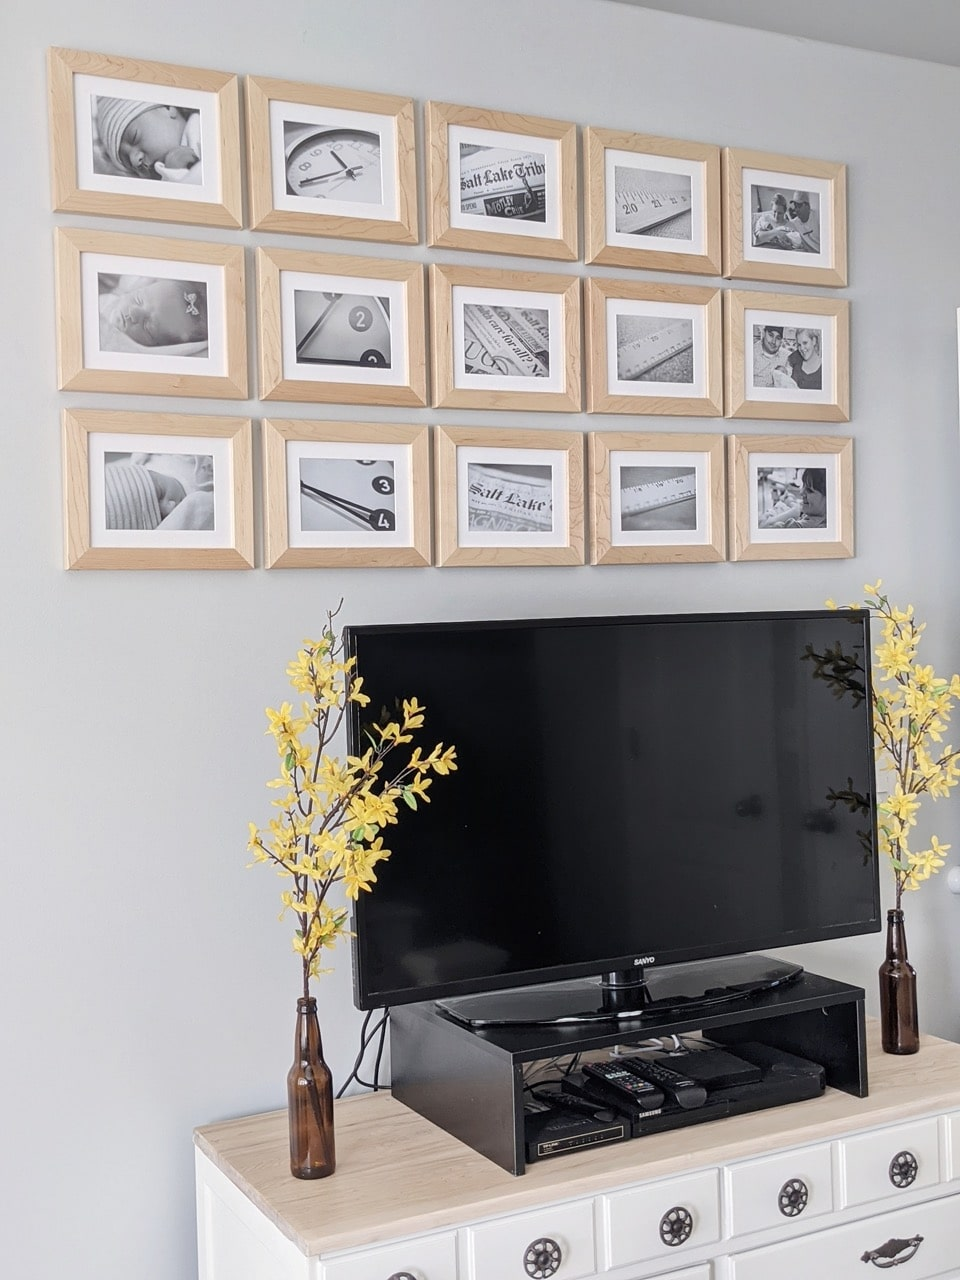 5x3 gallery wall